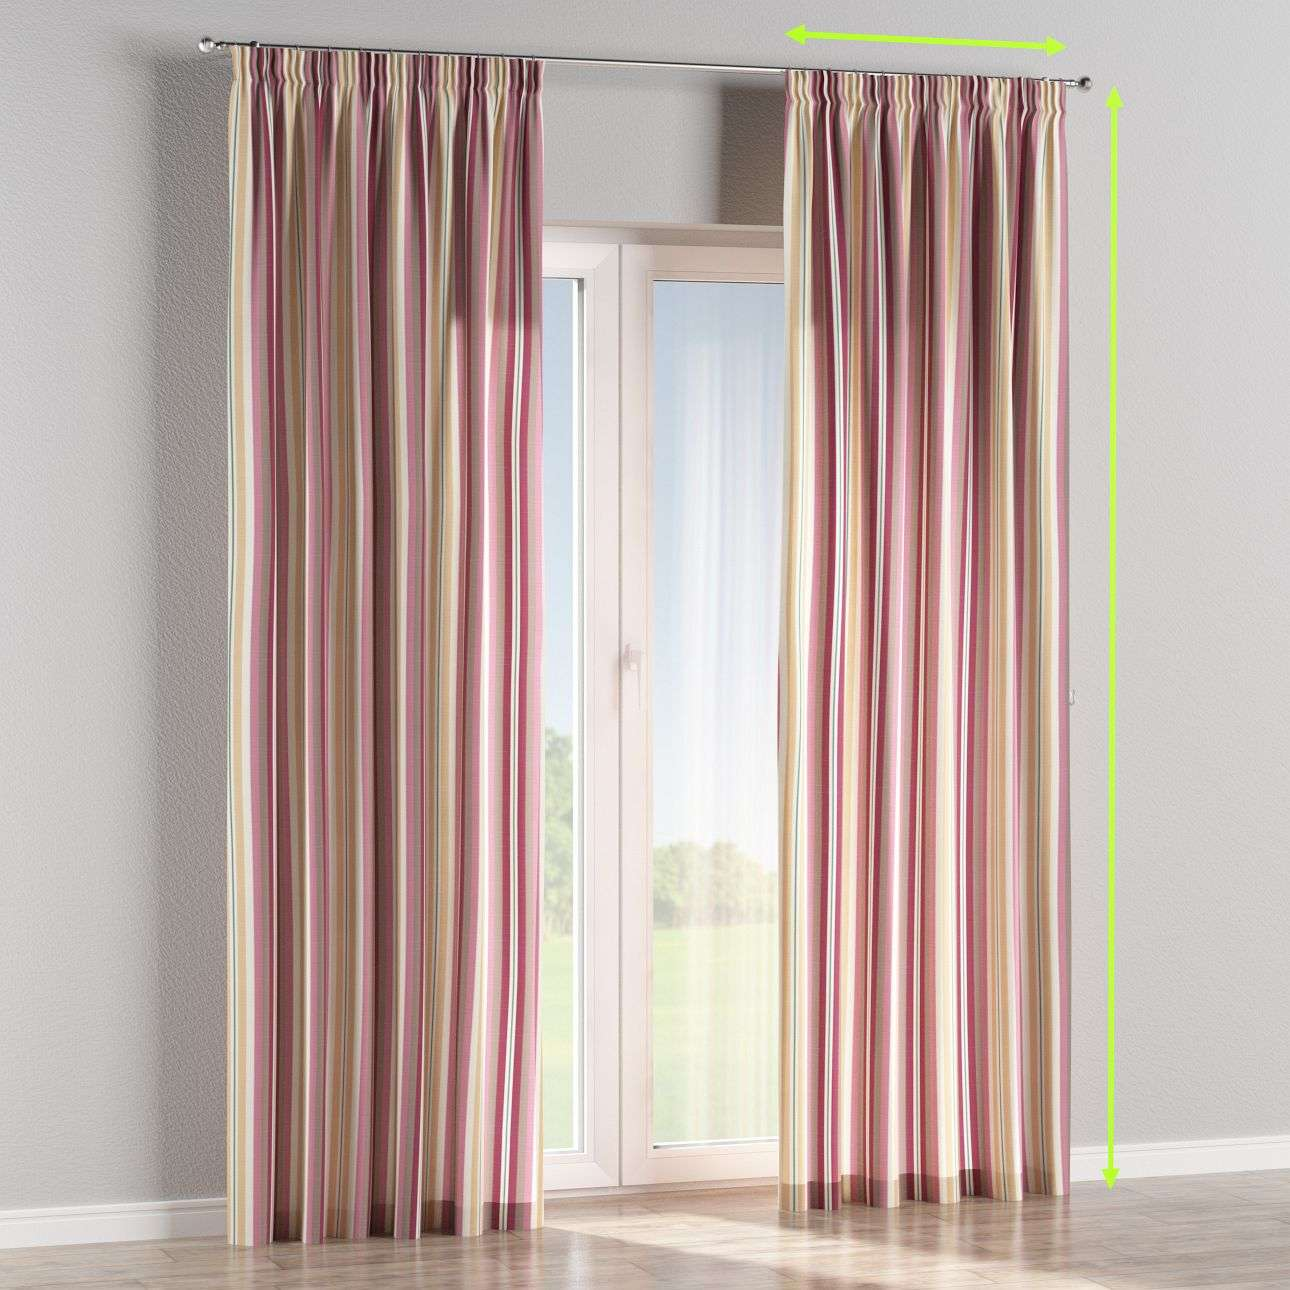 Pencil pleat curtains in collection Mirella, fabric: 141-14